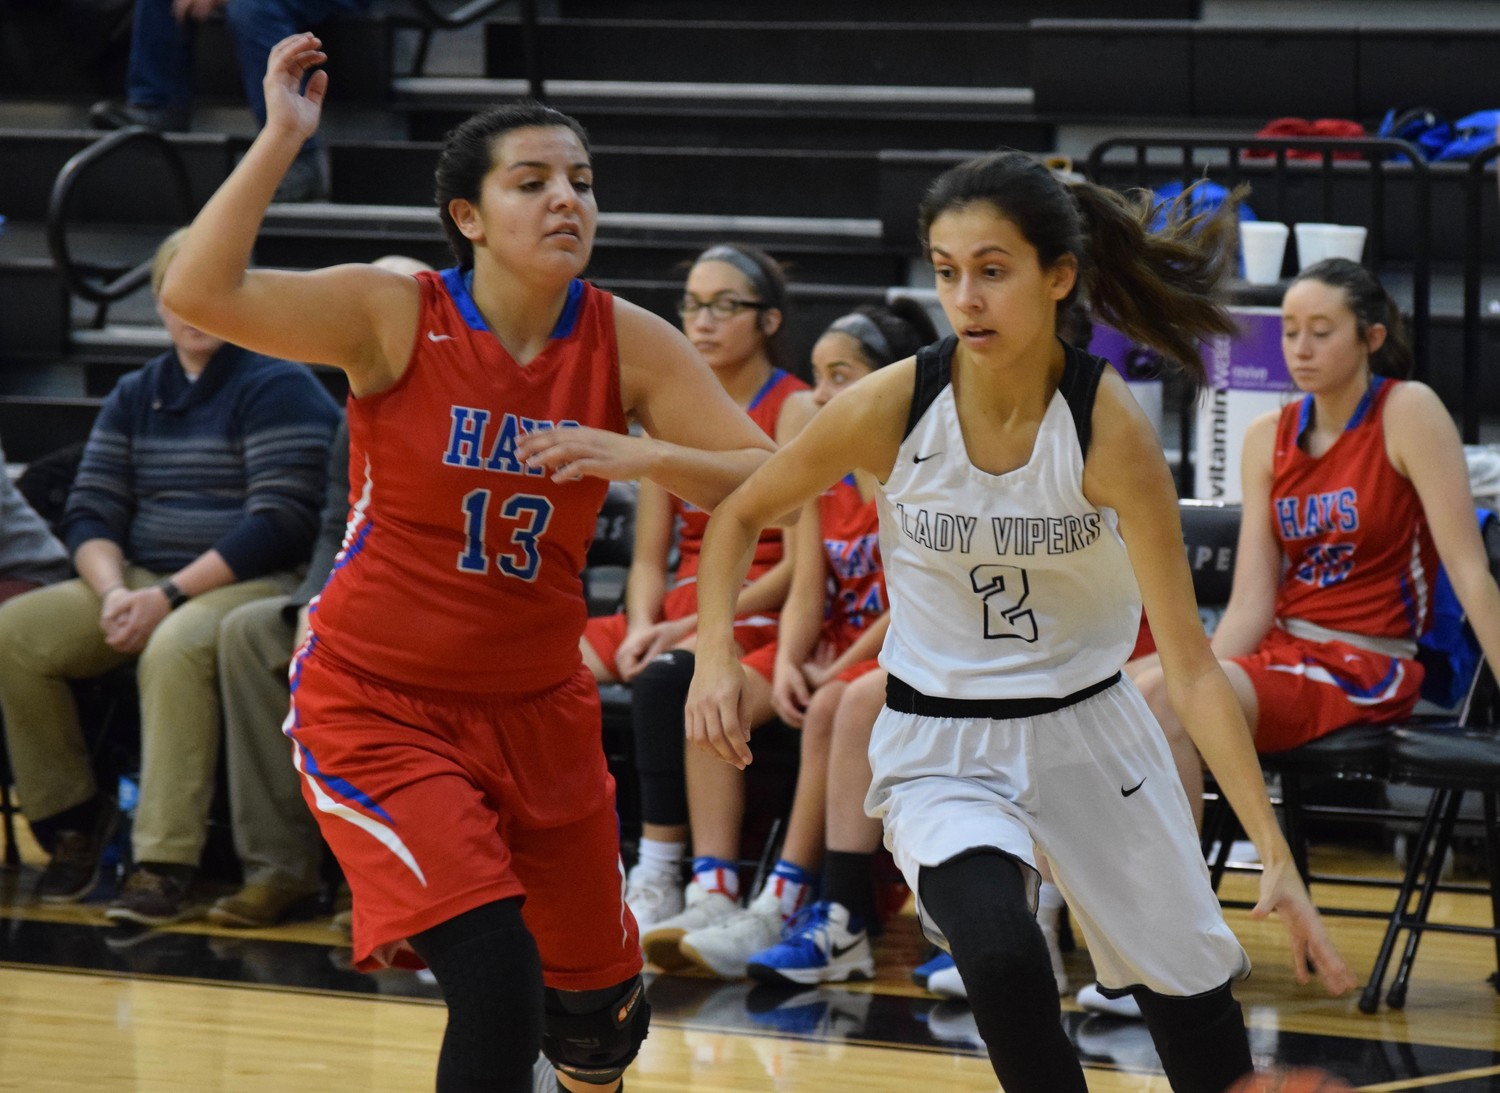 Senior Bee Gonzales scored 10 points and Vandegrift beat Hays 56-52 in double overtime Wednesday night.